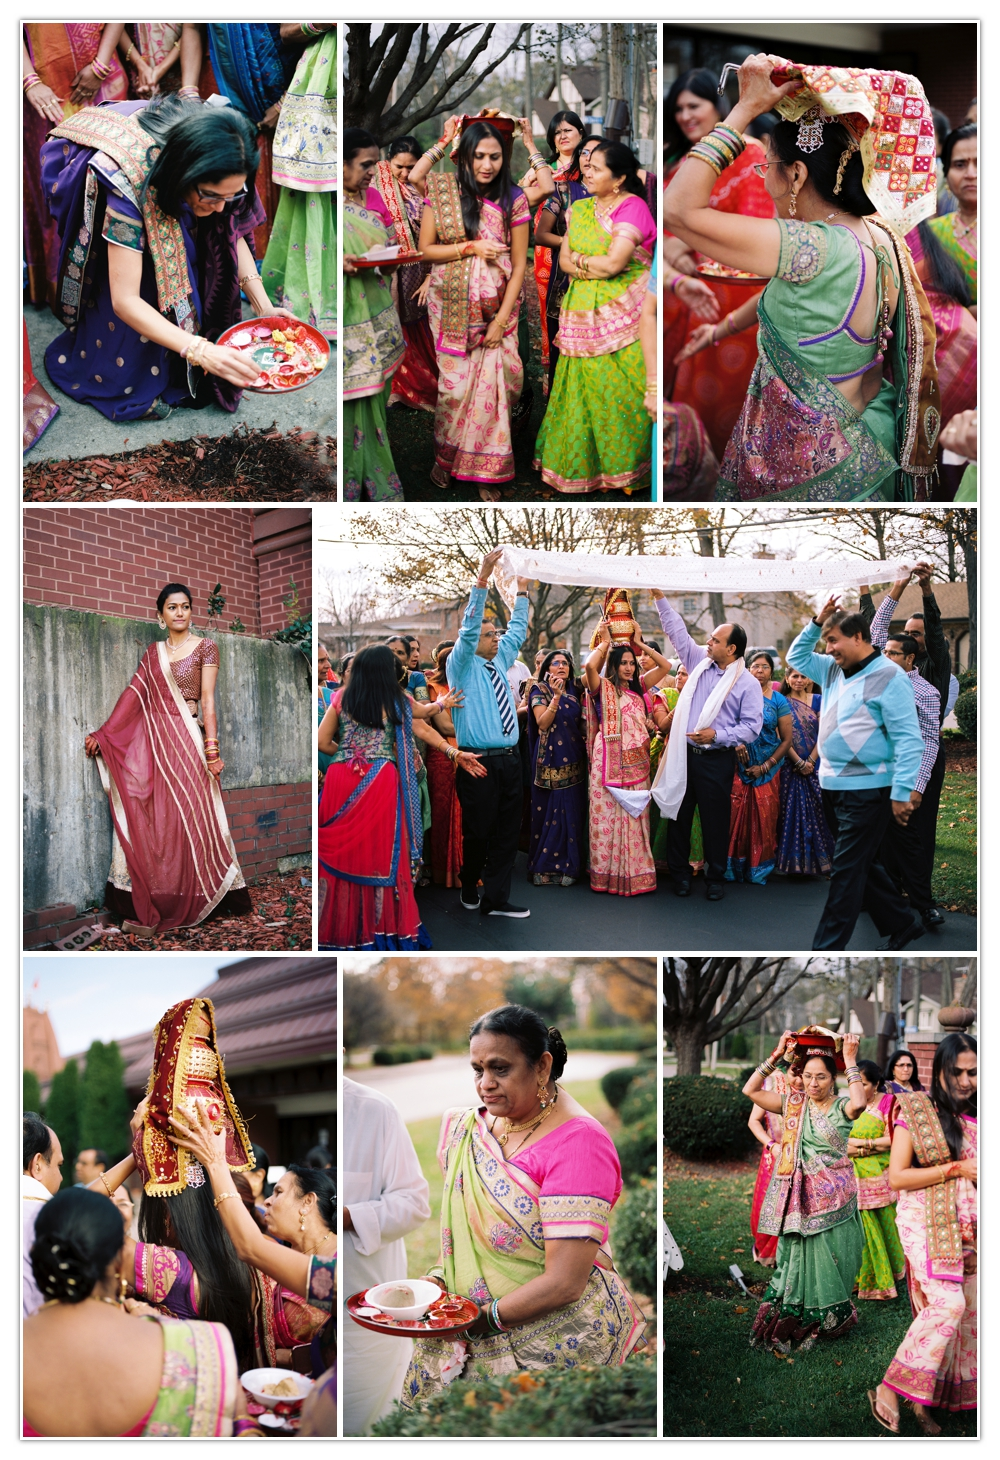 indianwedding-colors-pentax645-bride-photographer-ceremony-filmphotography-film